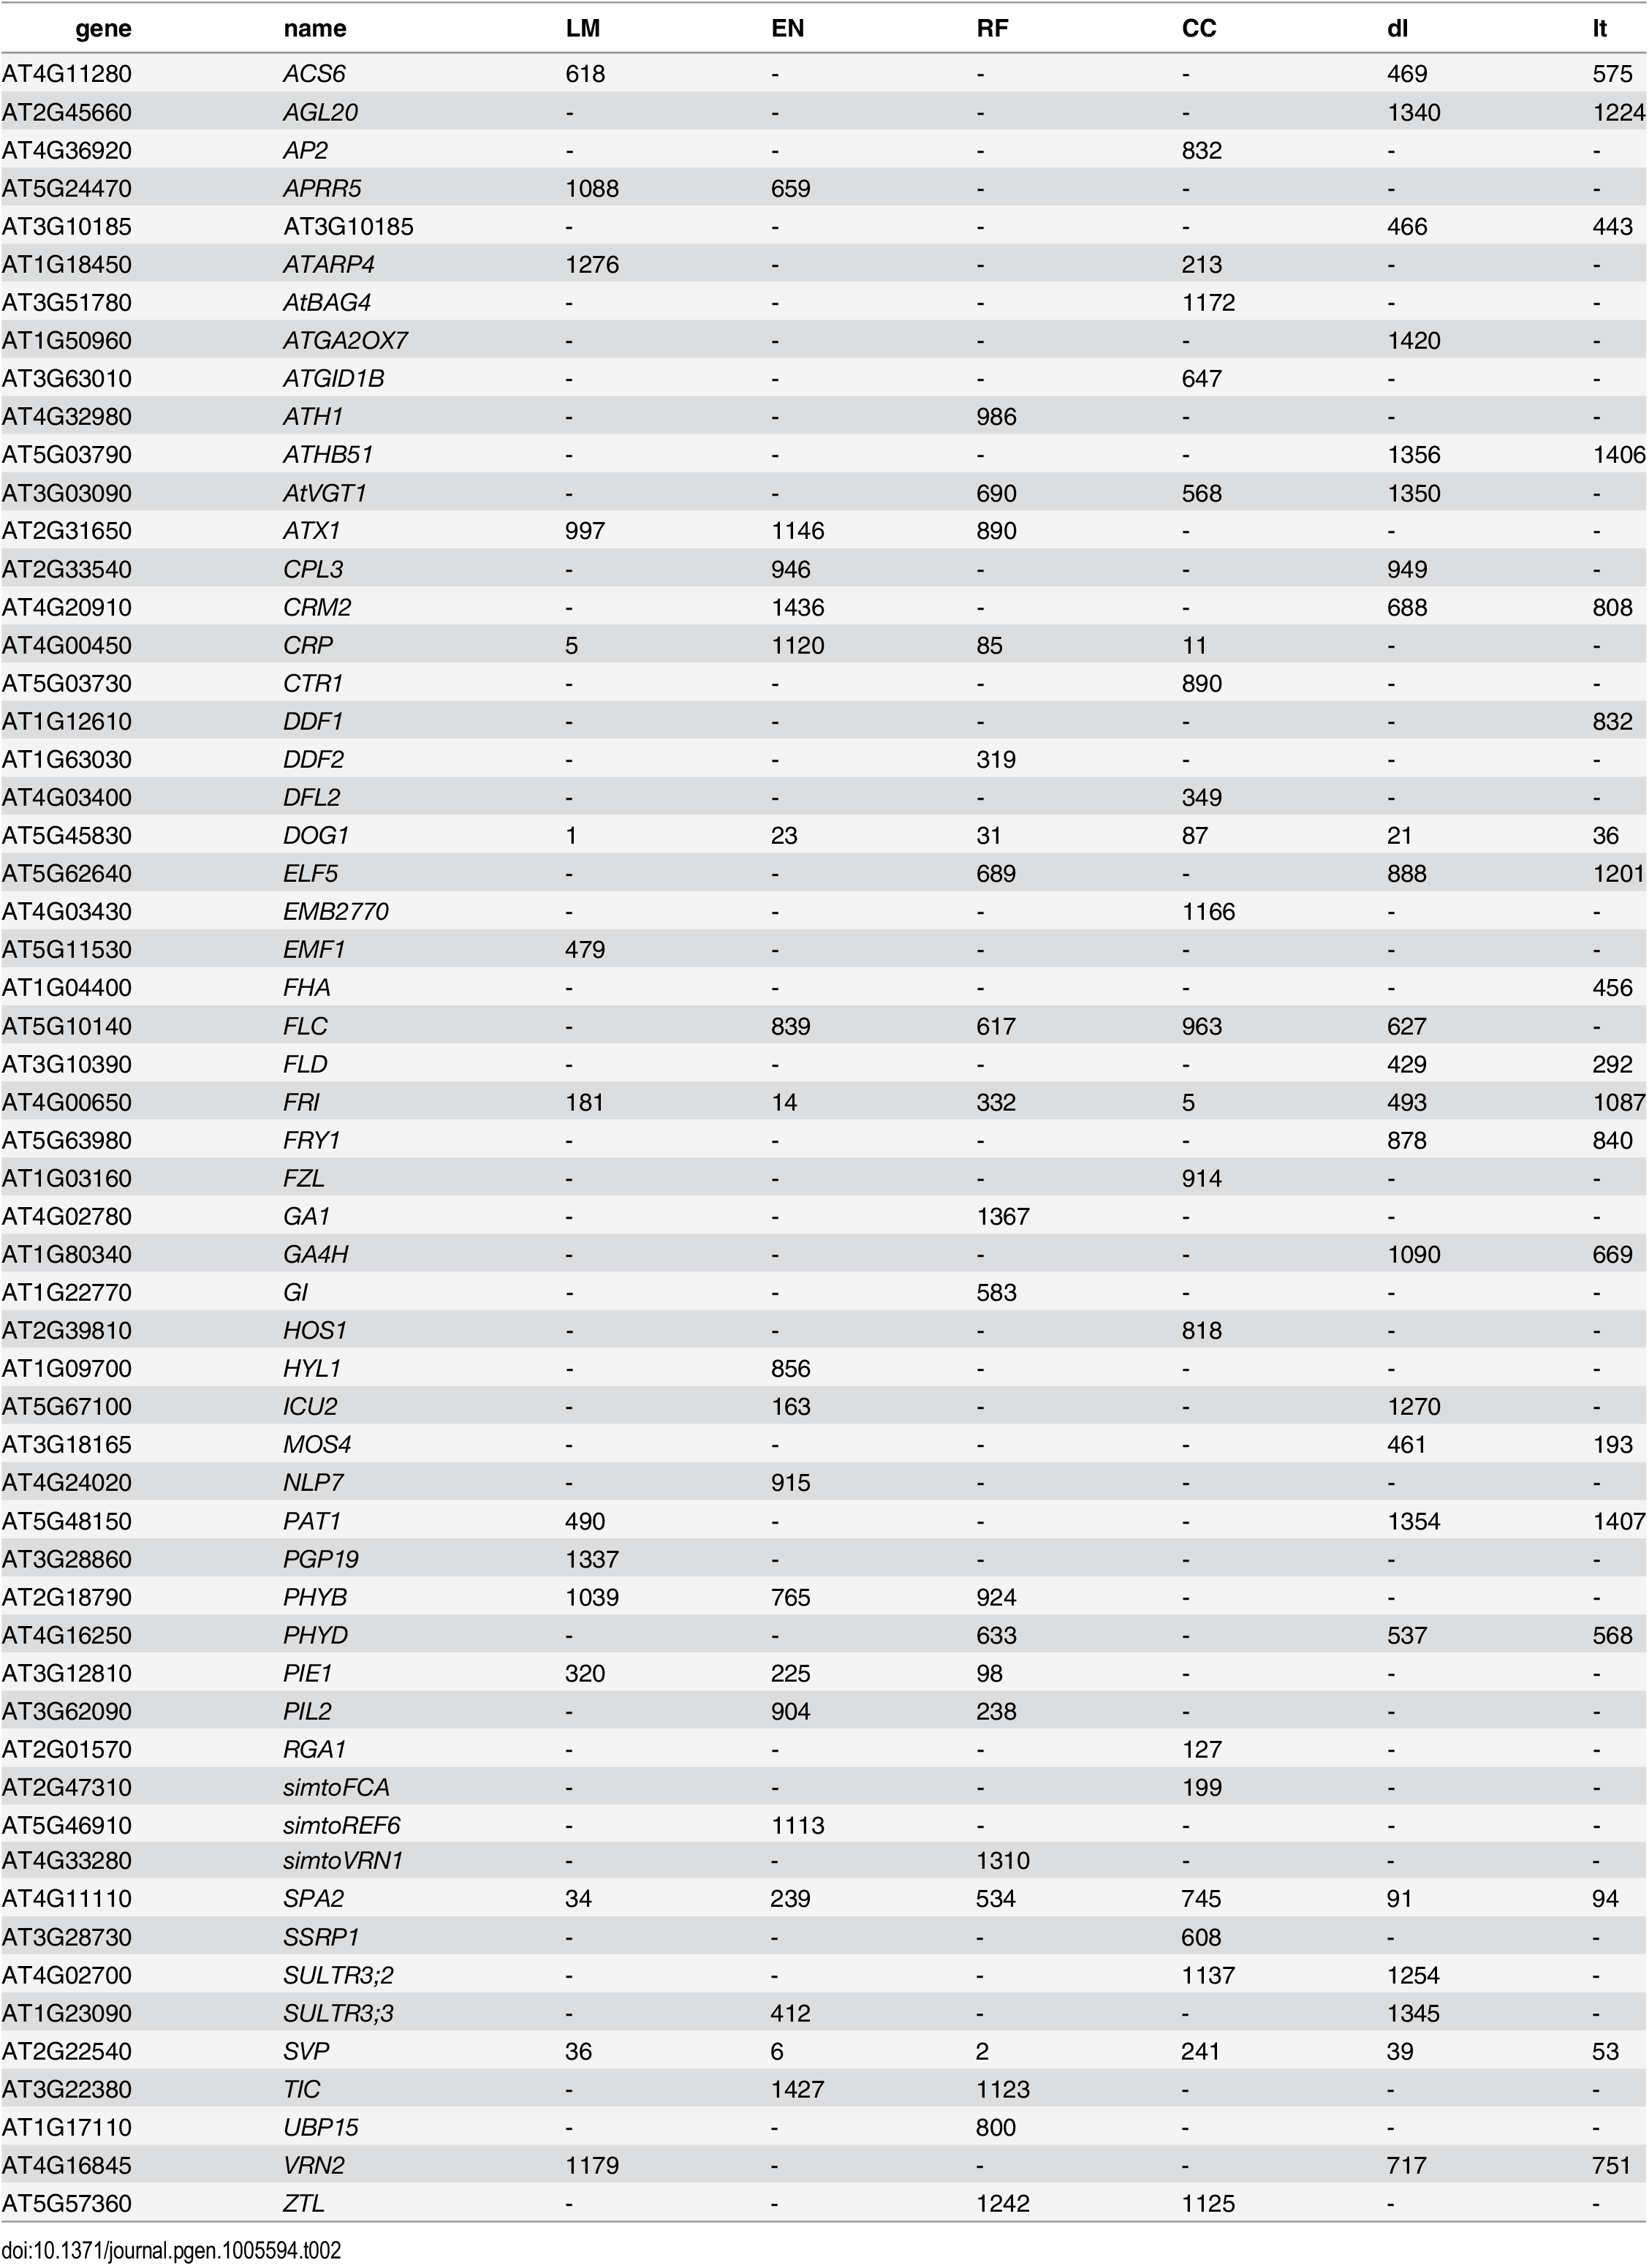 List of genes recovered by different types of univariate ETM, containing all flowering genes assigned to any of the 2000 SNPs with the lowest p-value for each method.